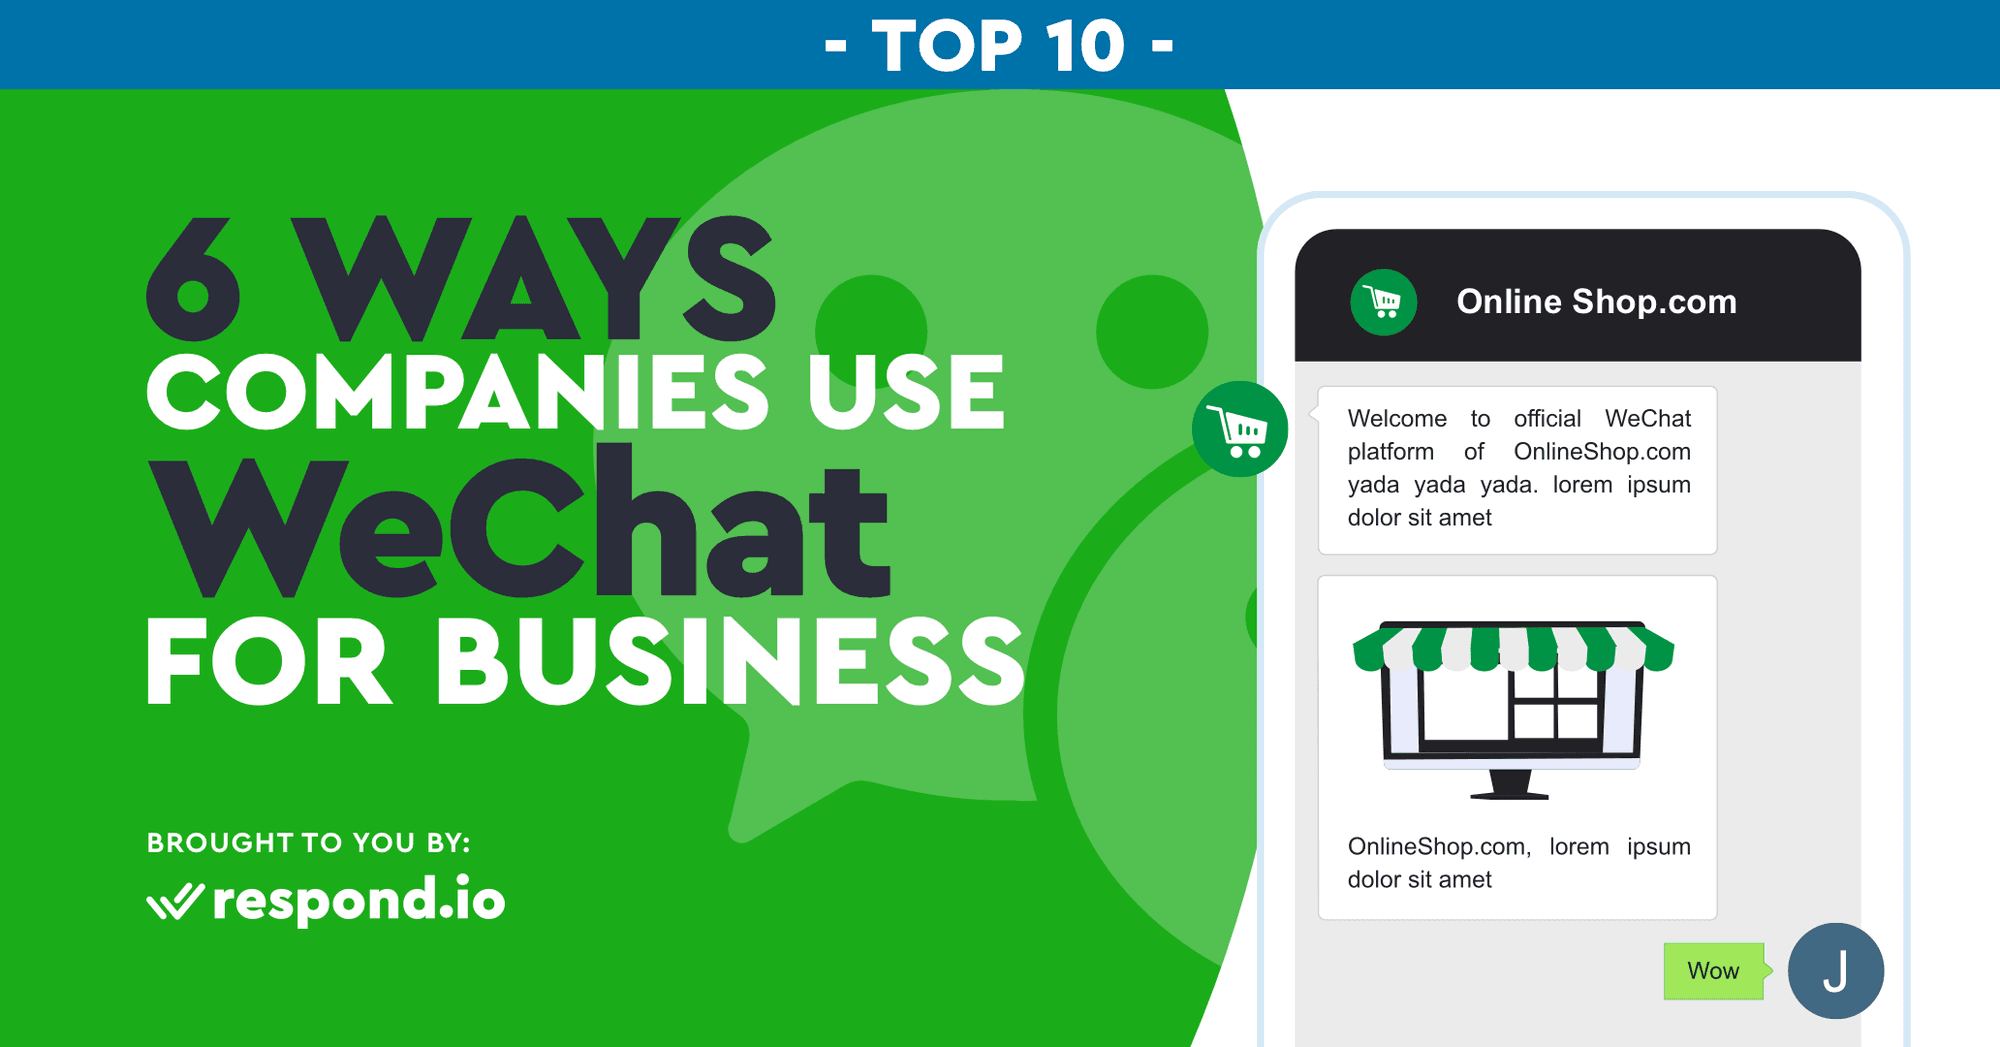 6 Ways Companies Use WeChat for Business